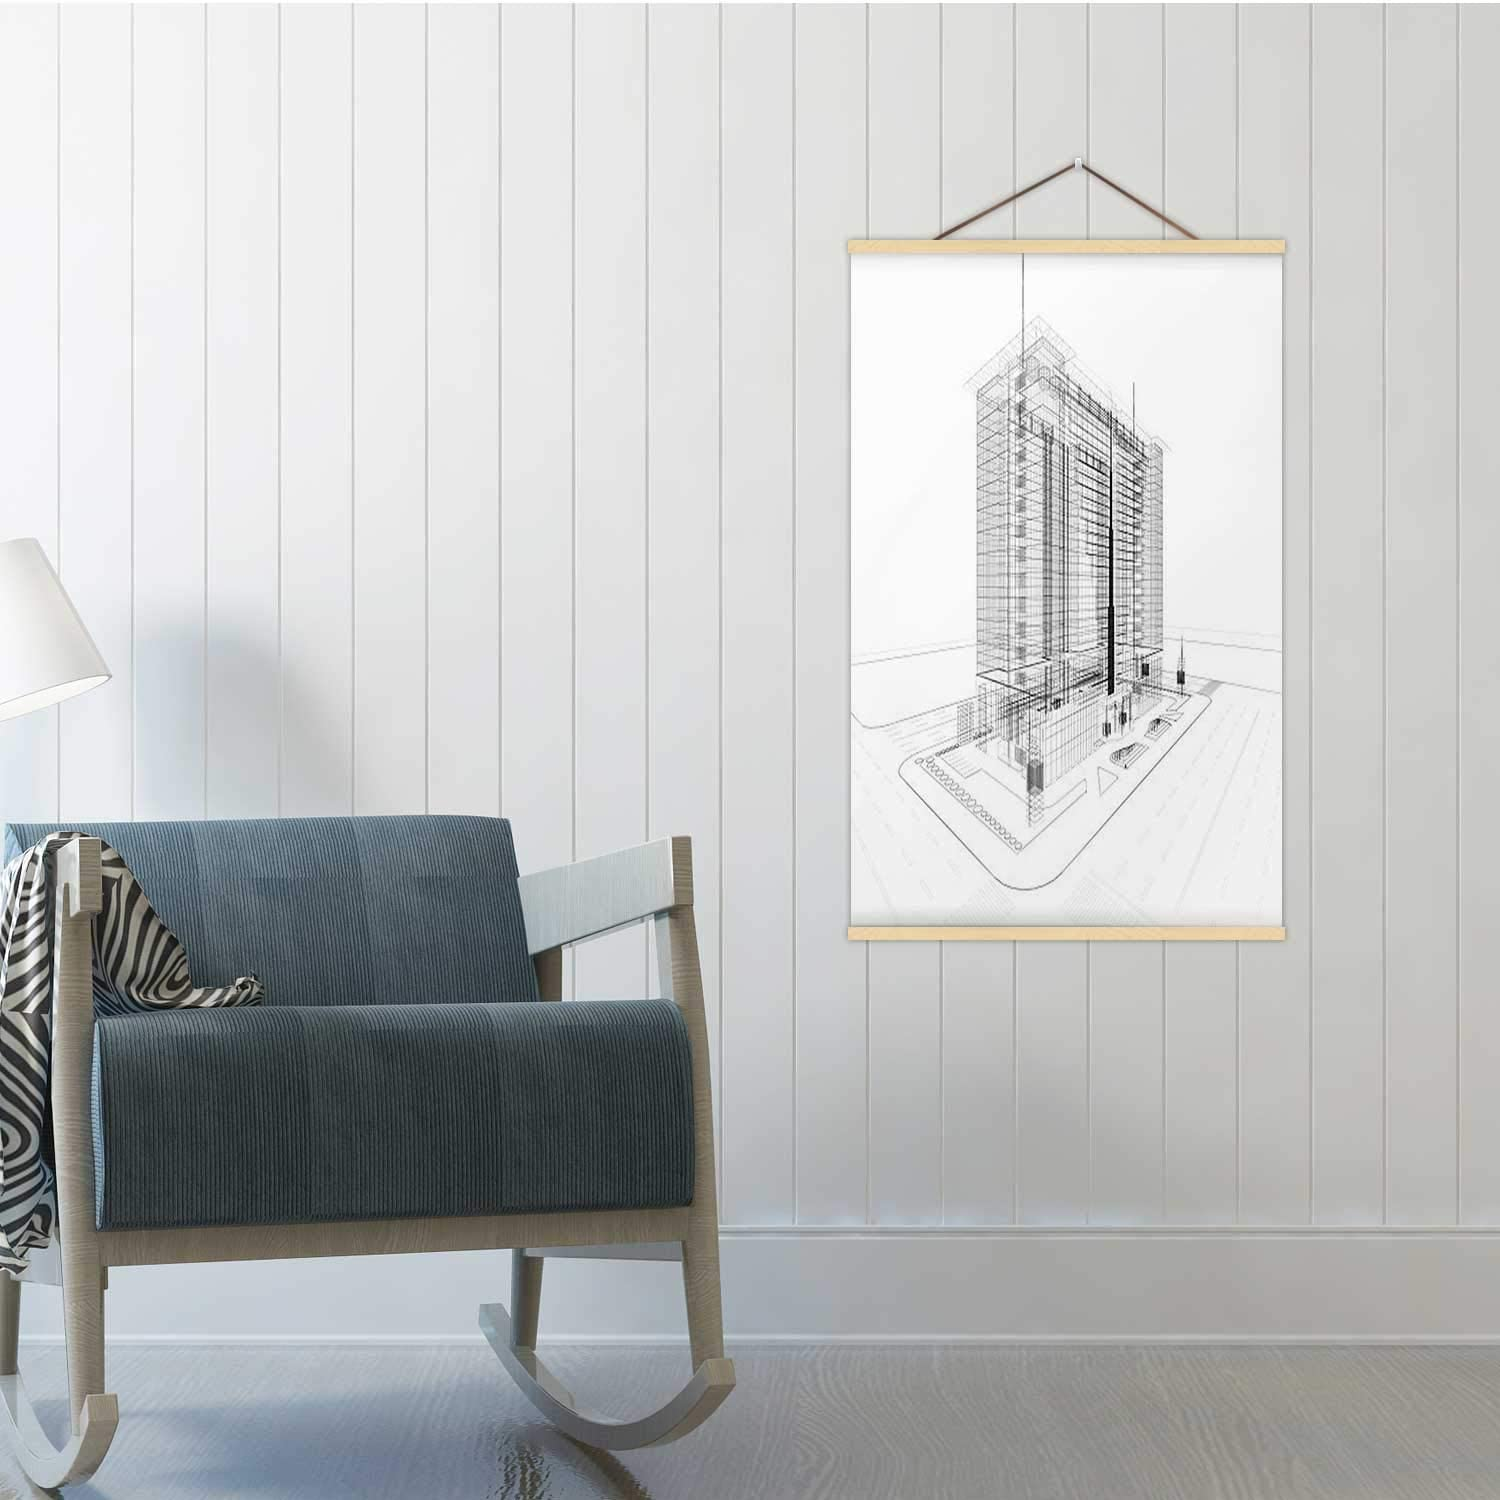 Amazon Com 3d Architecture Abstract Construction Industry Poster Frames Building Exterior Poster 19x29in Wxh Posters Prints